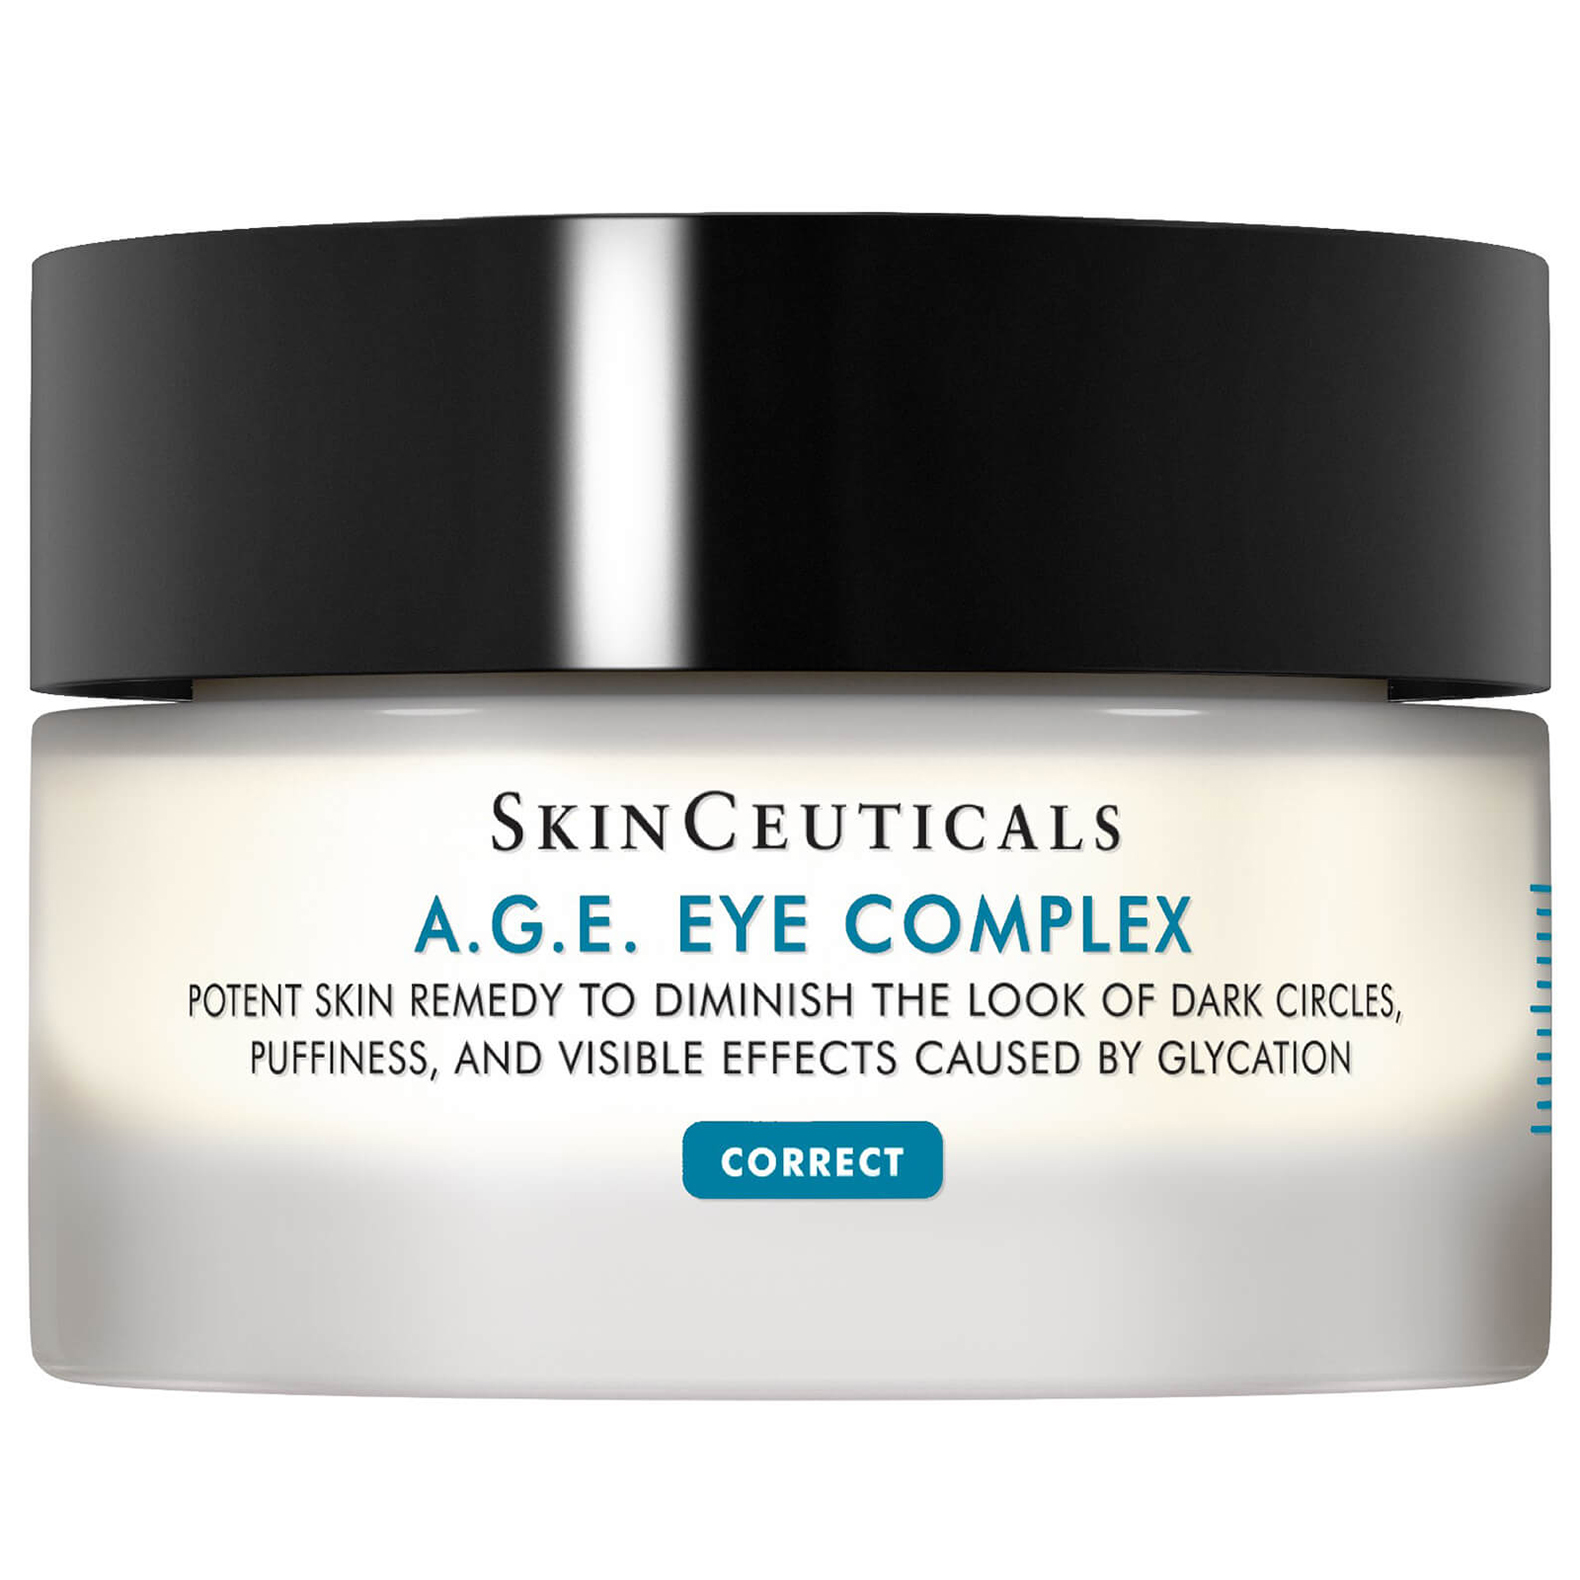 11 Best Eye Creams That Actually Work According To Dermatologists